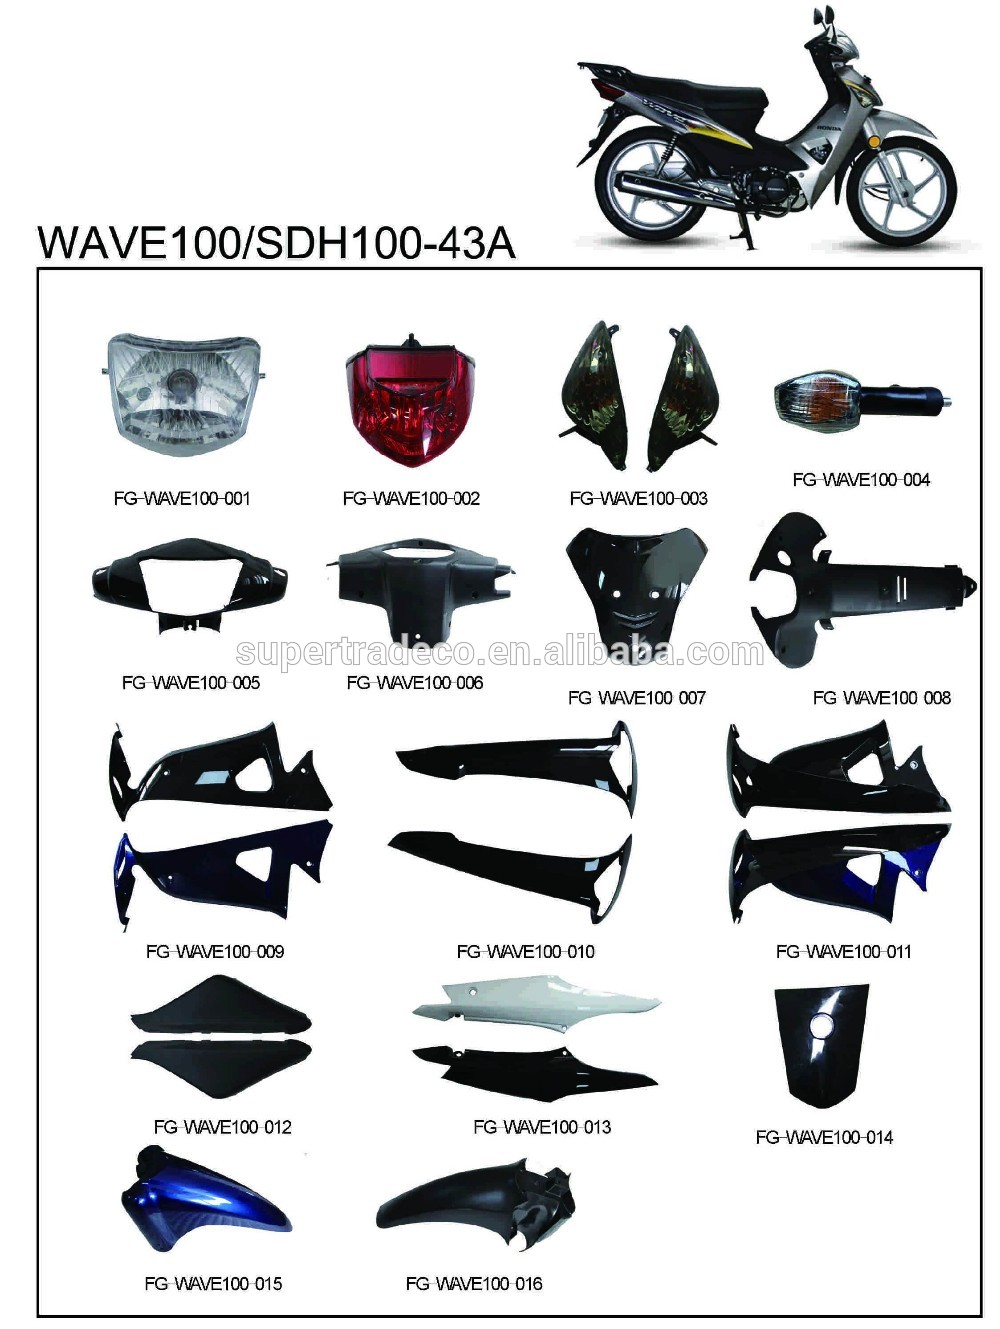 Complete Plastic Parts Wave100